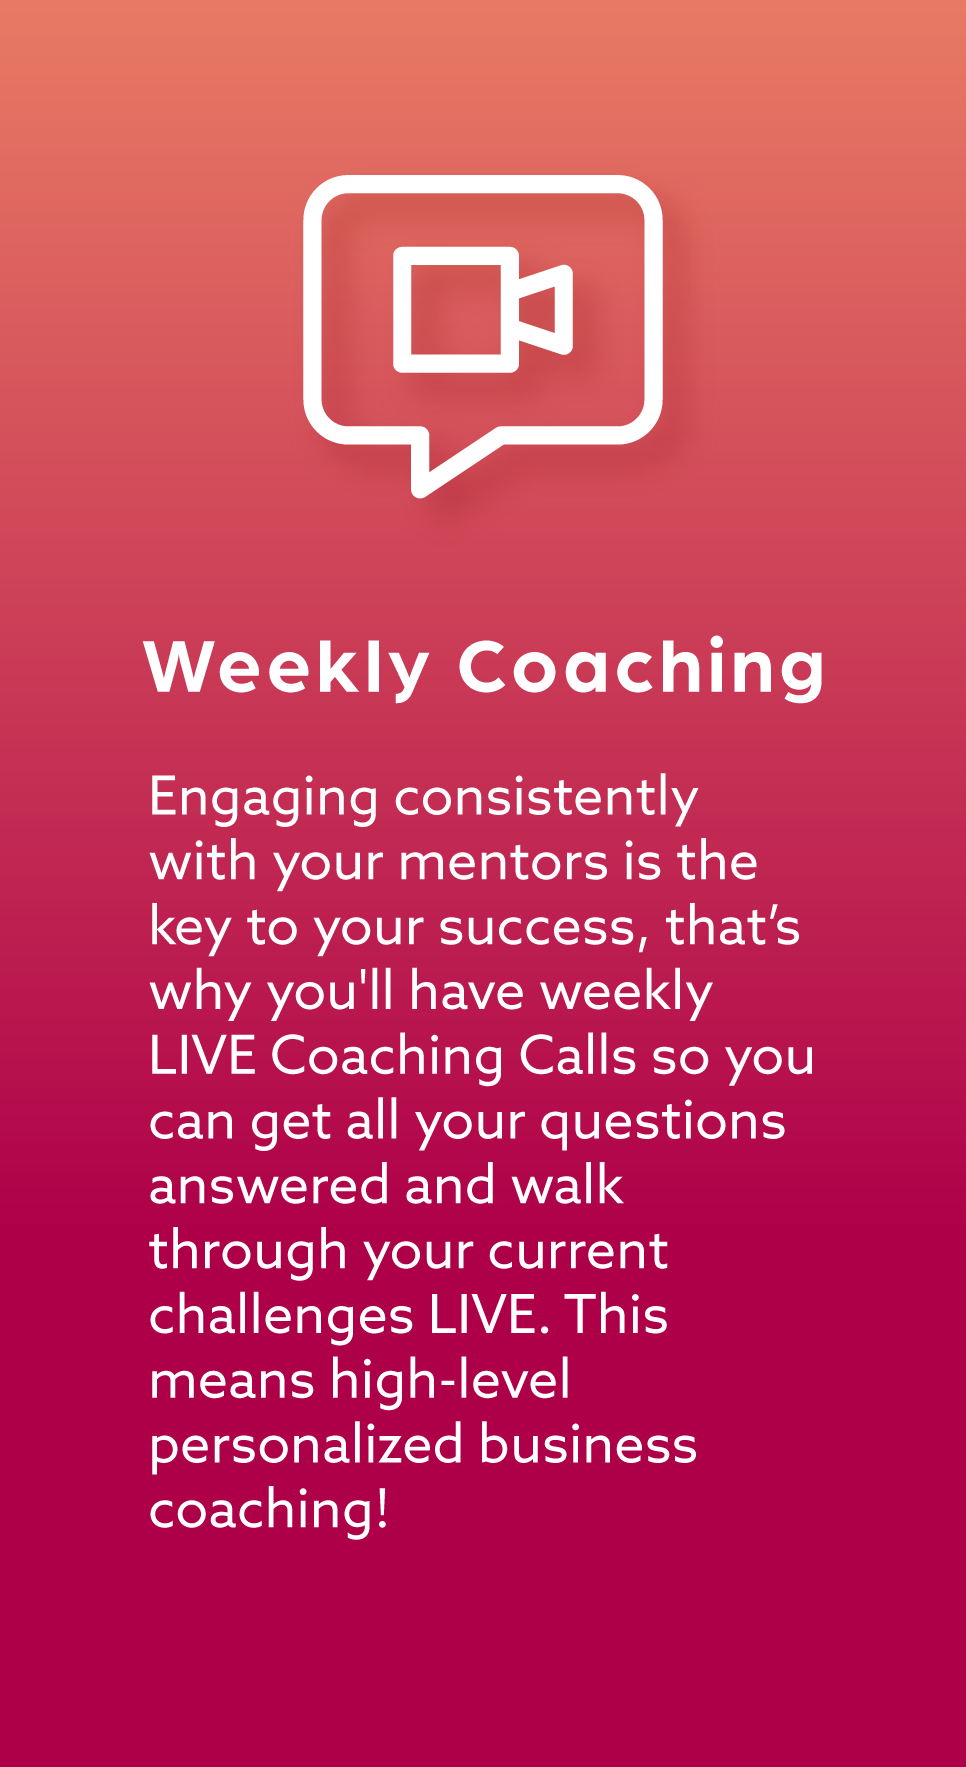 WEEKLY COACHING